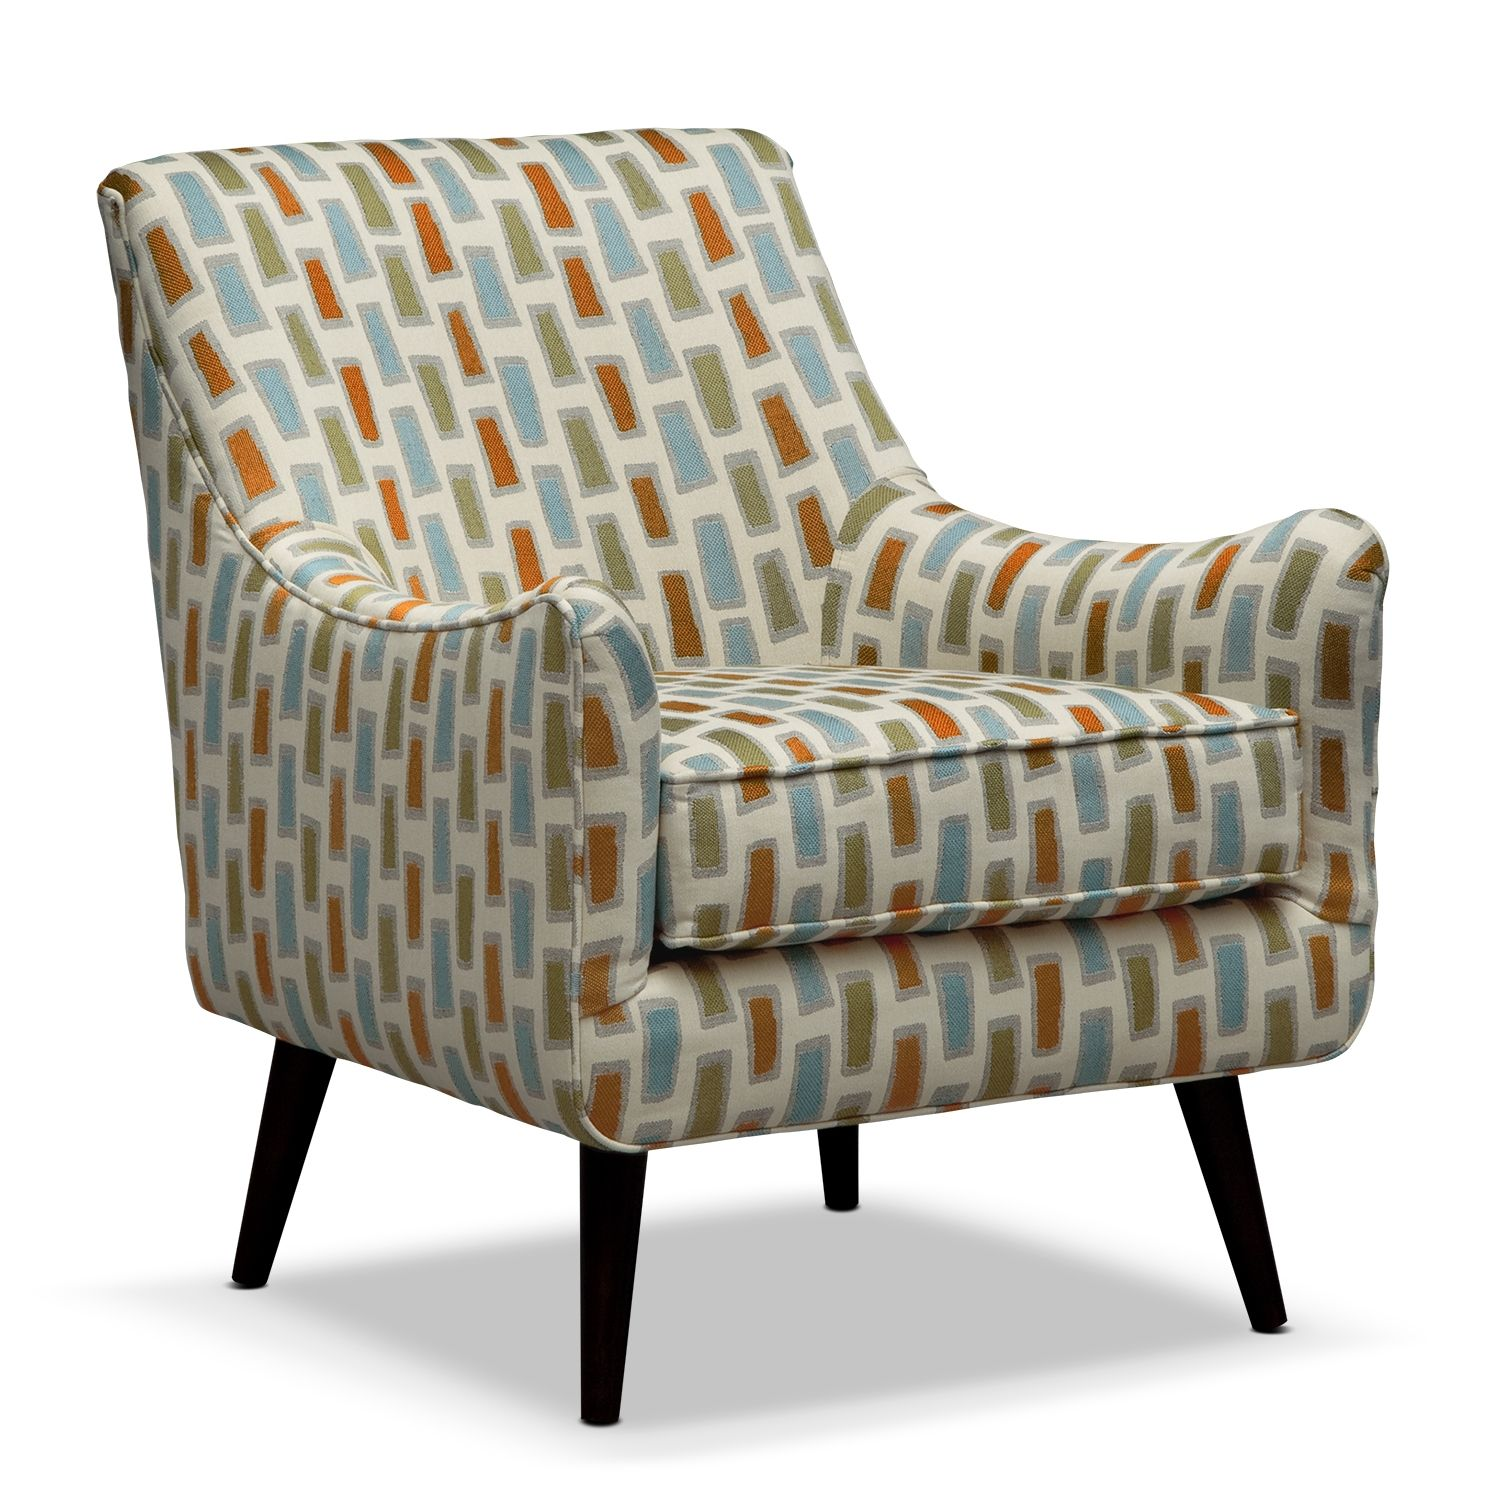 Shop for a Cindy Crawford Home Rosemere Azure Accent Chair at